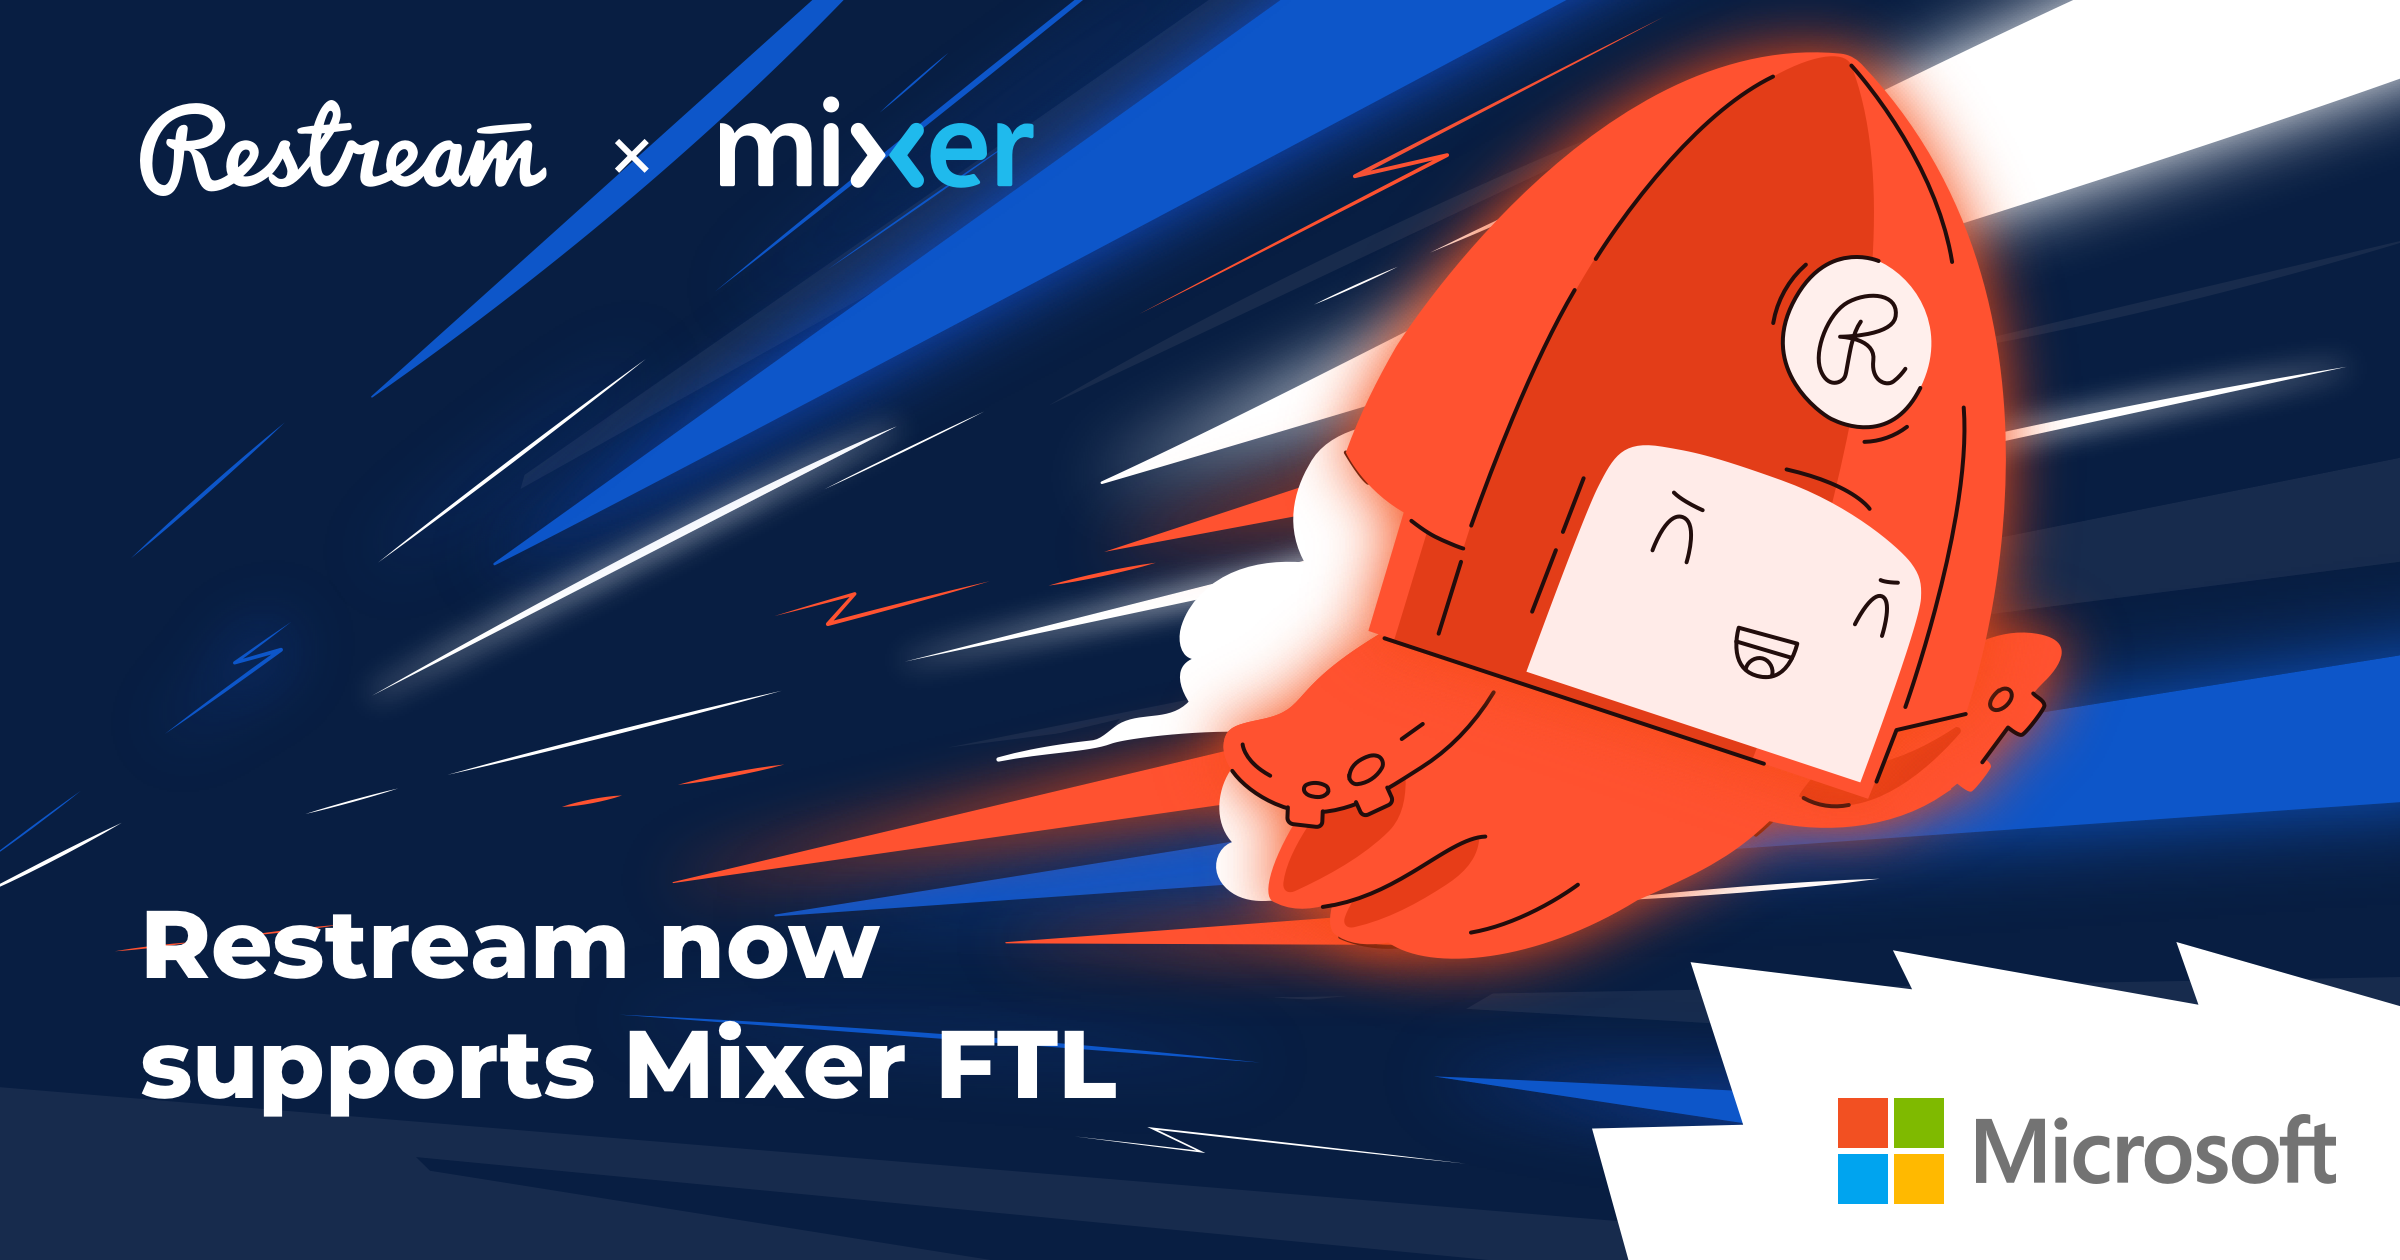 Restream now supports Mixer FTL